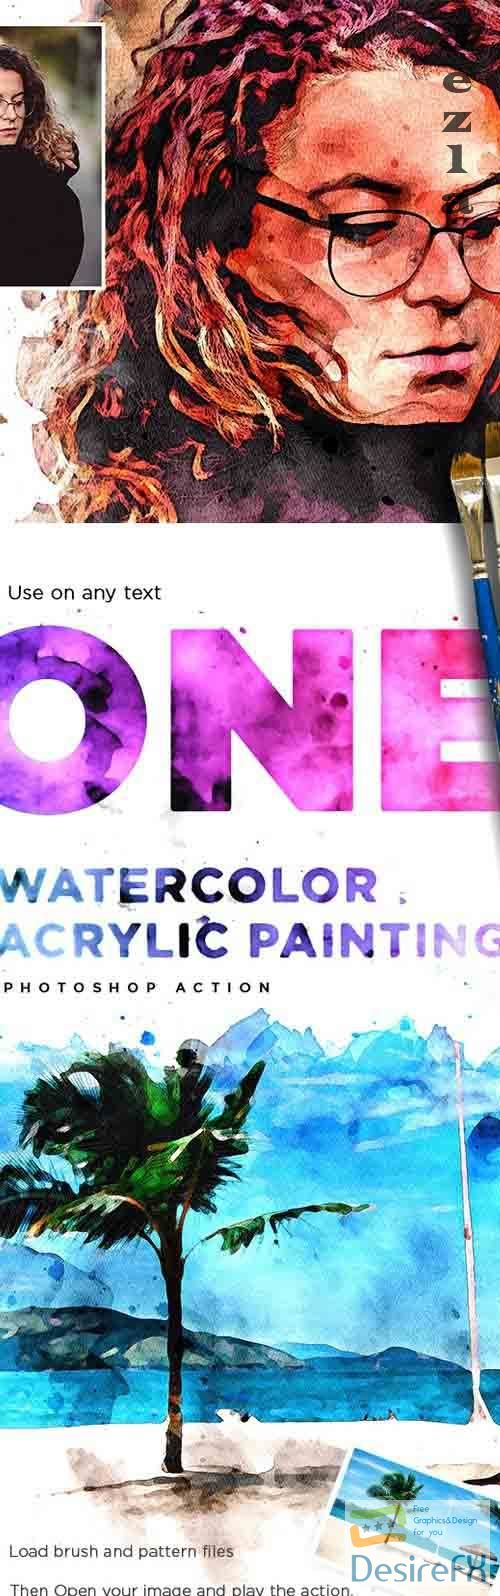 Watercolor Acrylic Painting - Photoshop Action - 26682376